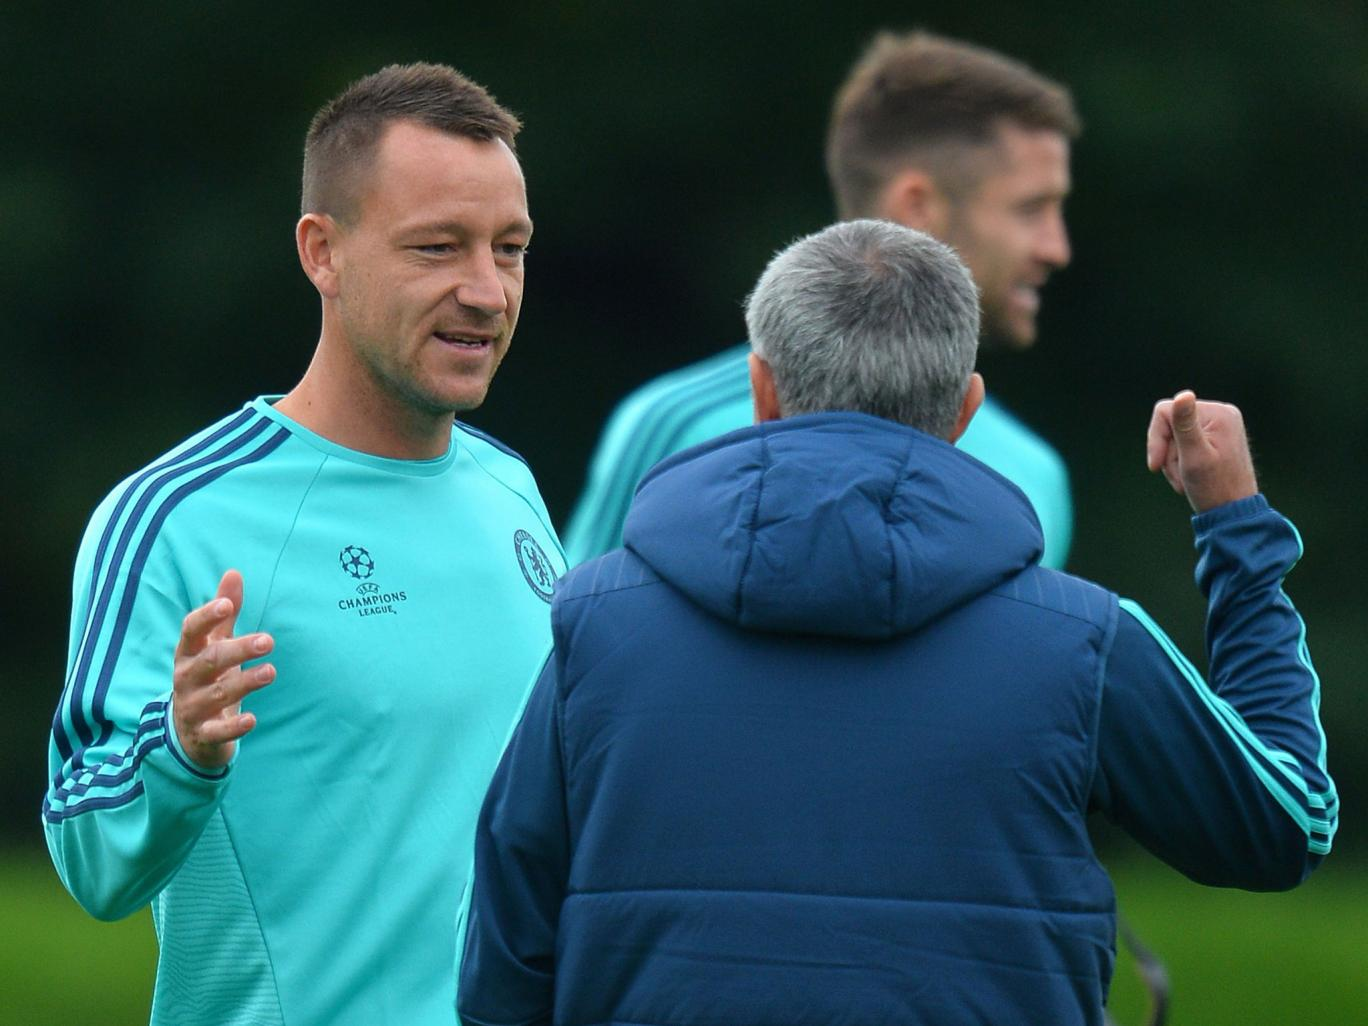 Terry Backs Mourinho, Vows To Return To Best Form